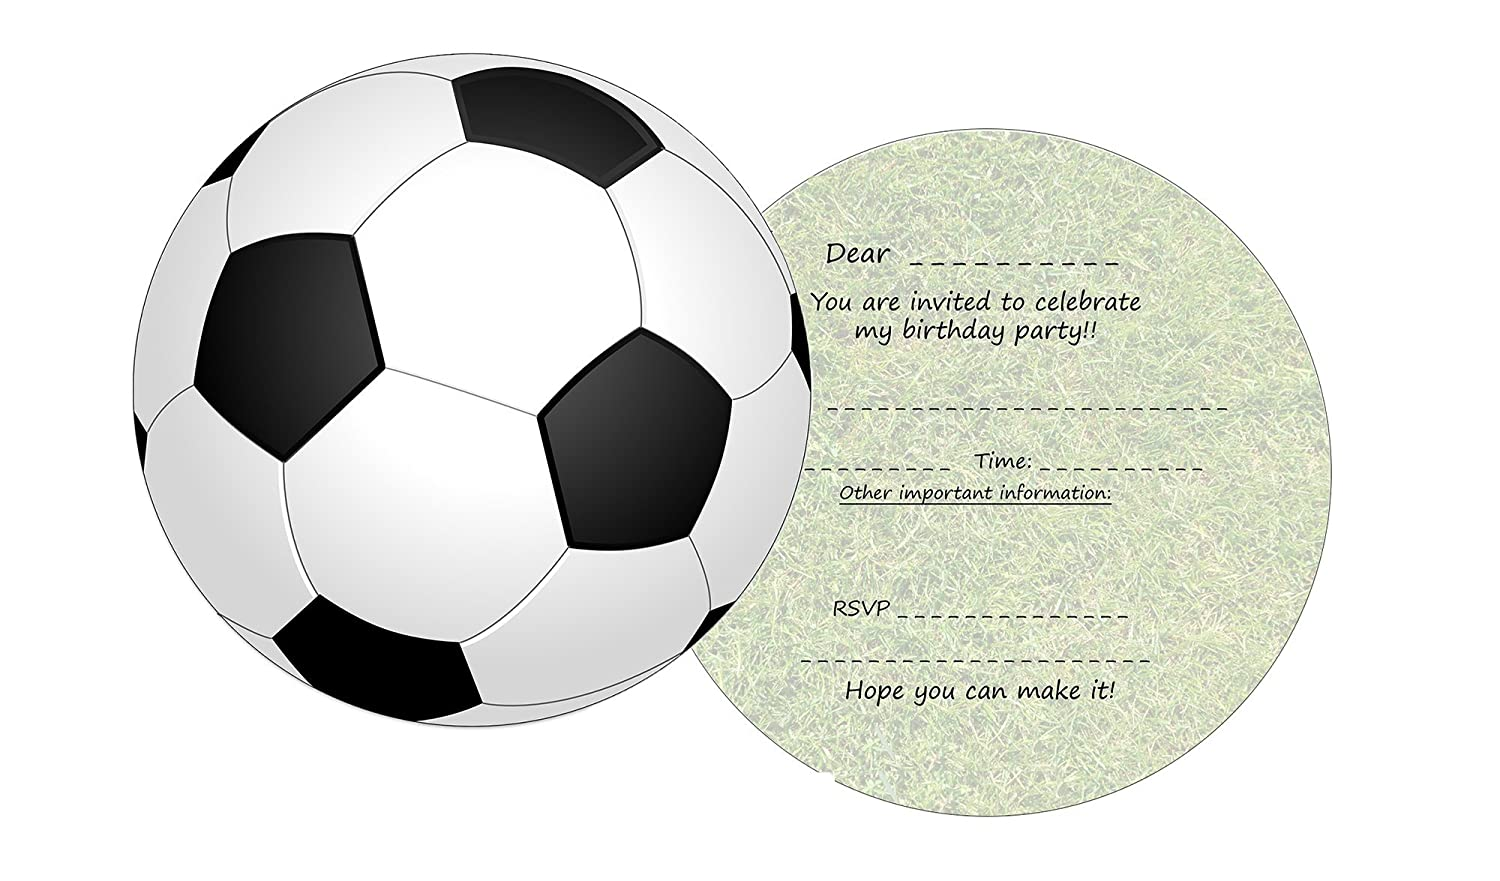 the lazy panda card company 11 Round Football Invites for Kids Birthday Party Invitations (With Matching Envelopes)